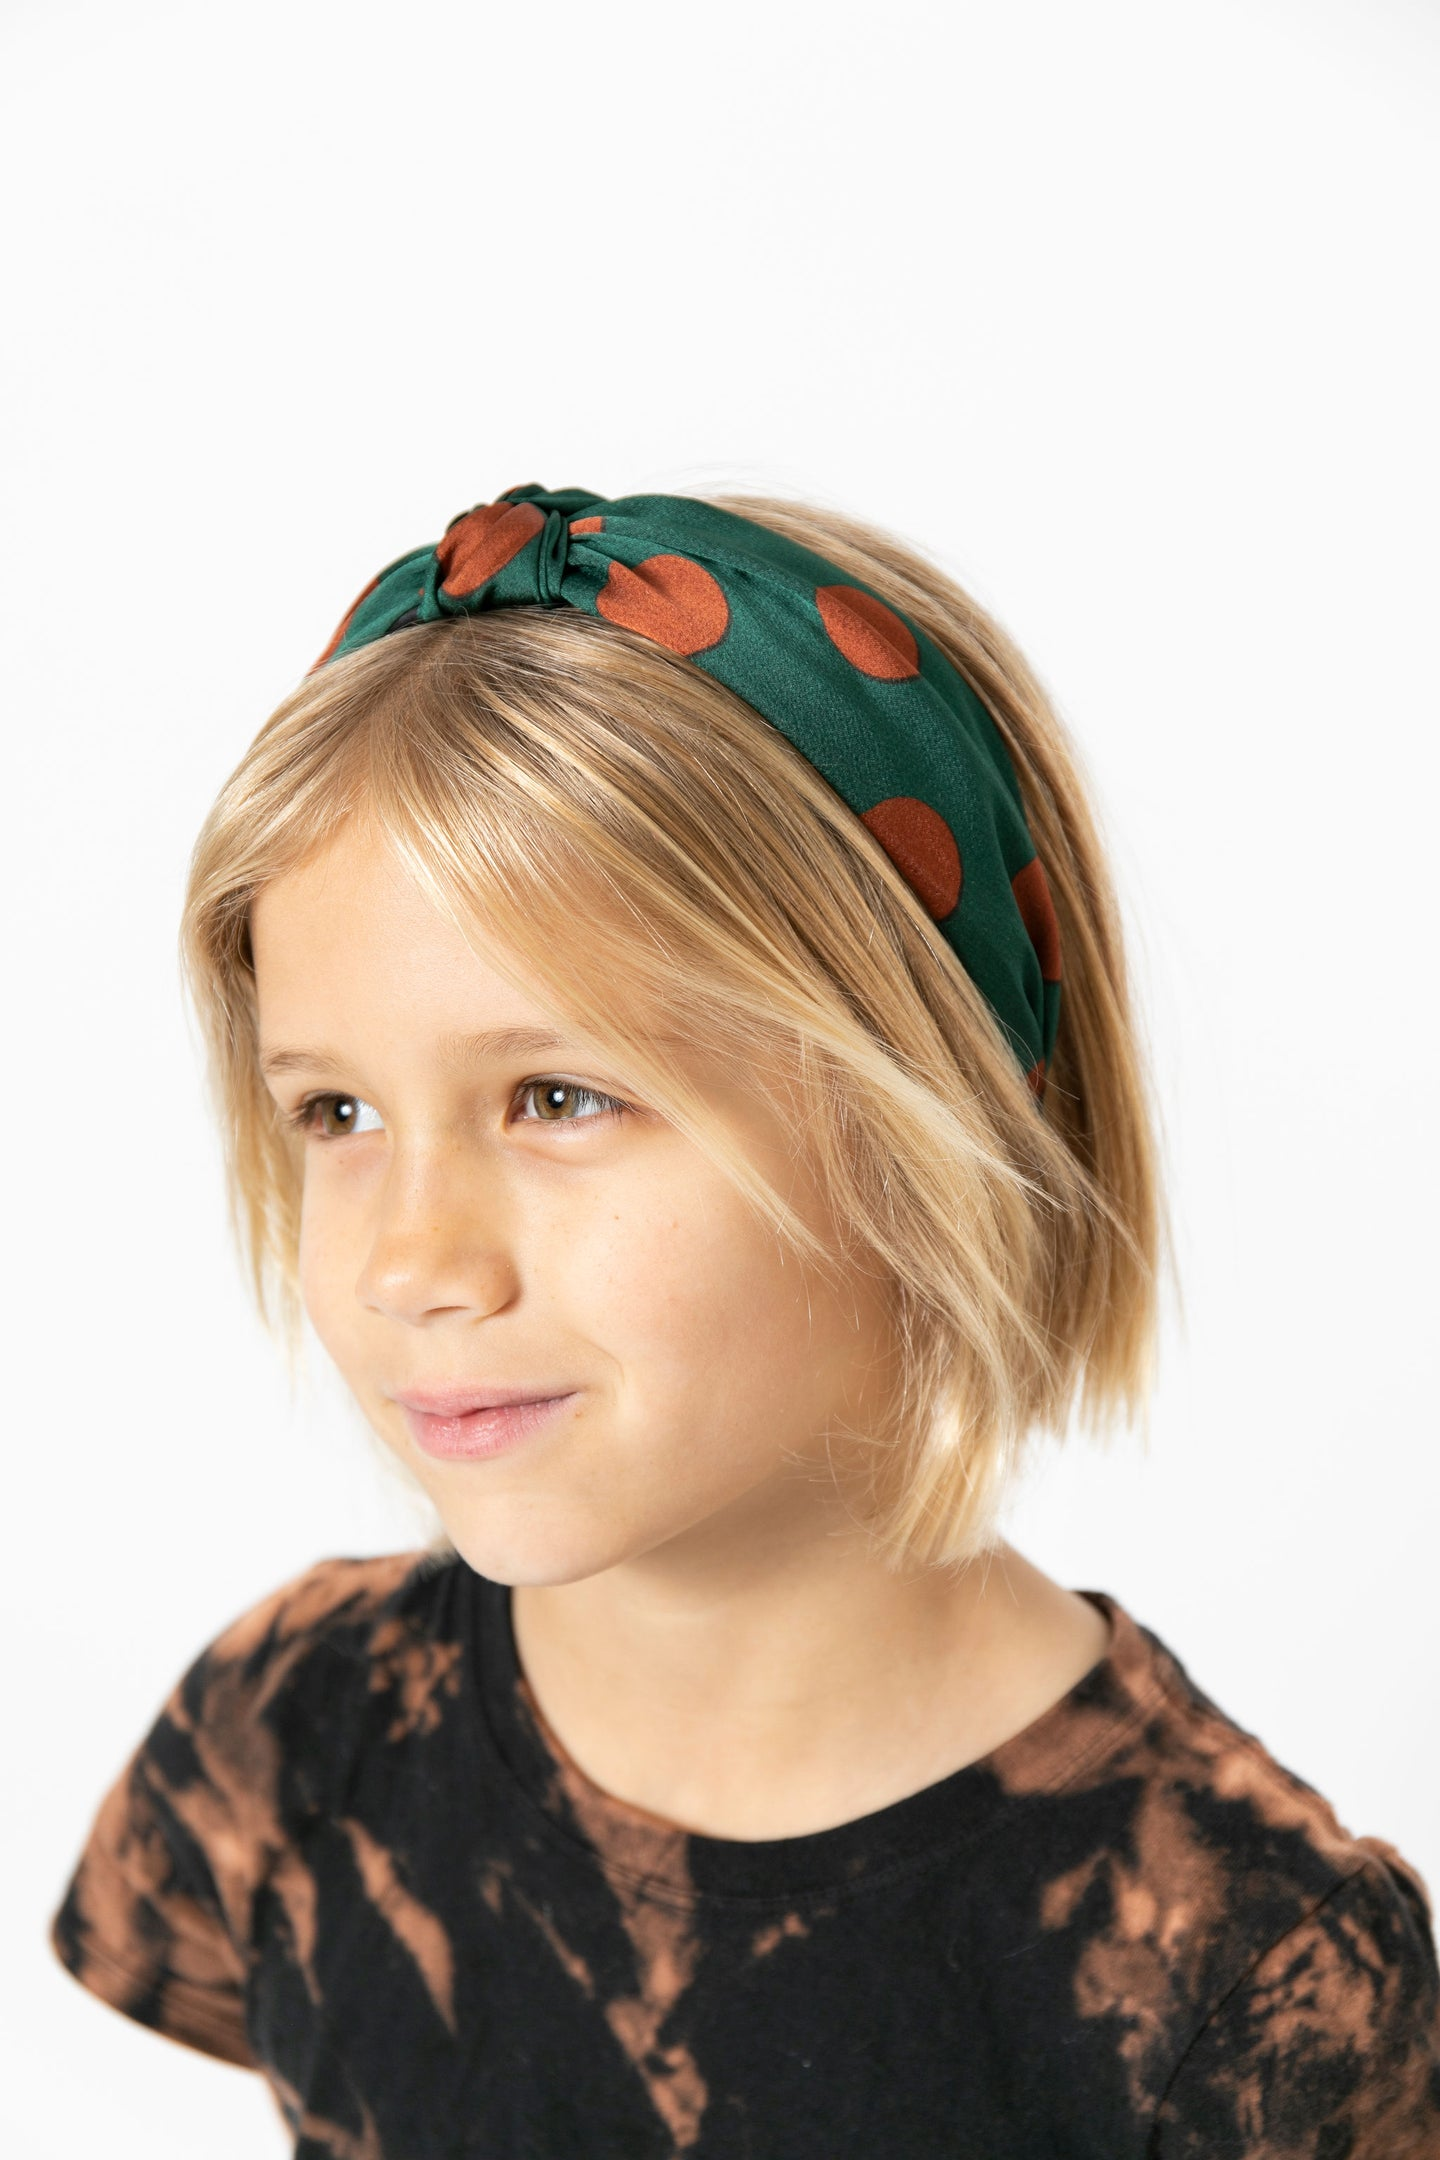 GREEN POLKA DOT HEADBAND